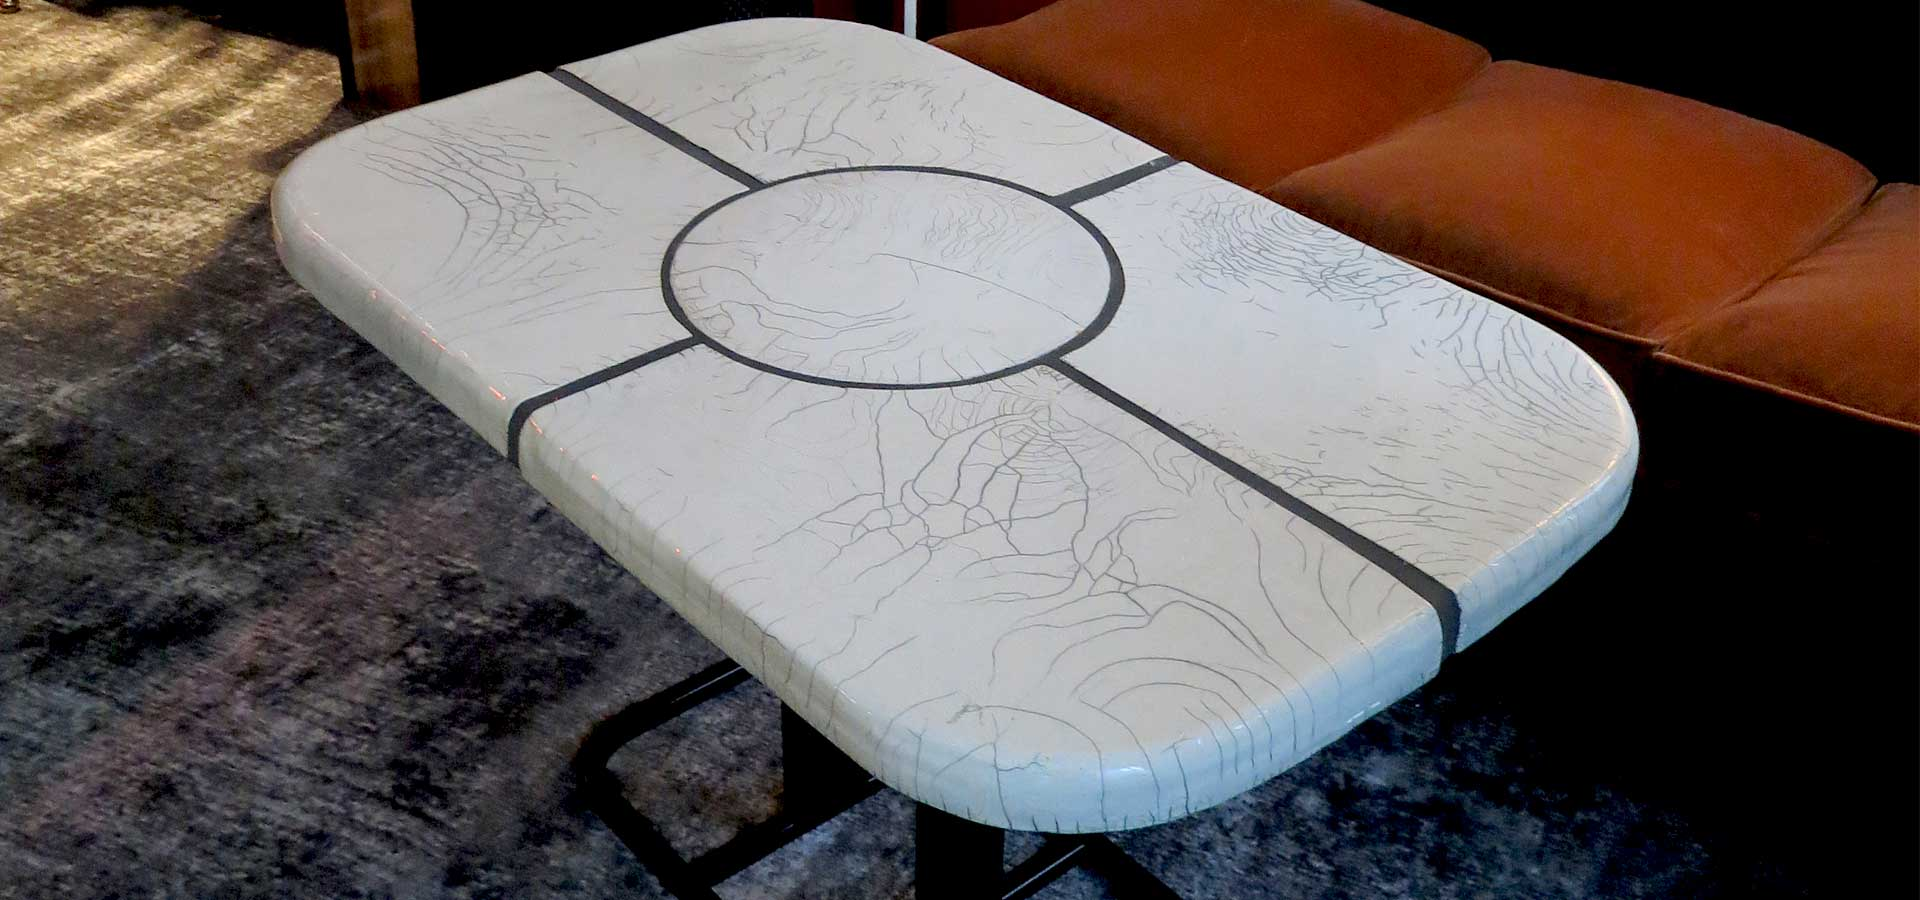 Carrelage Raku et texture Raku sur table design